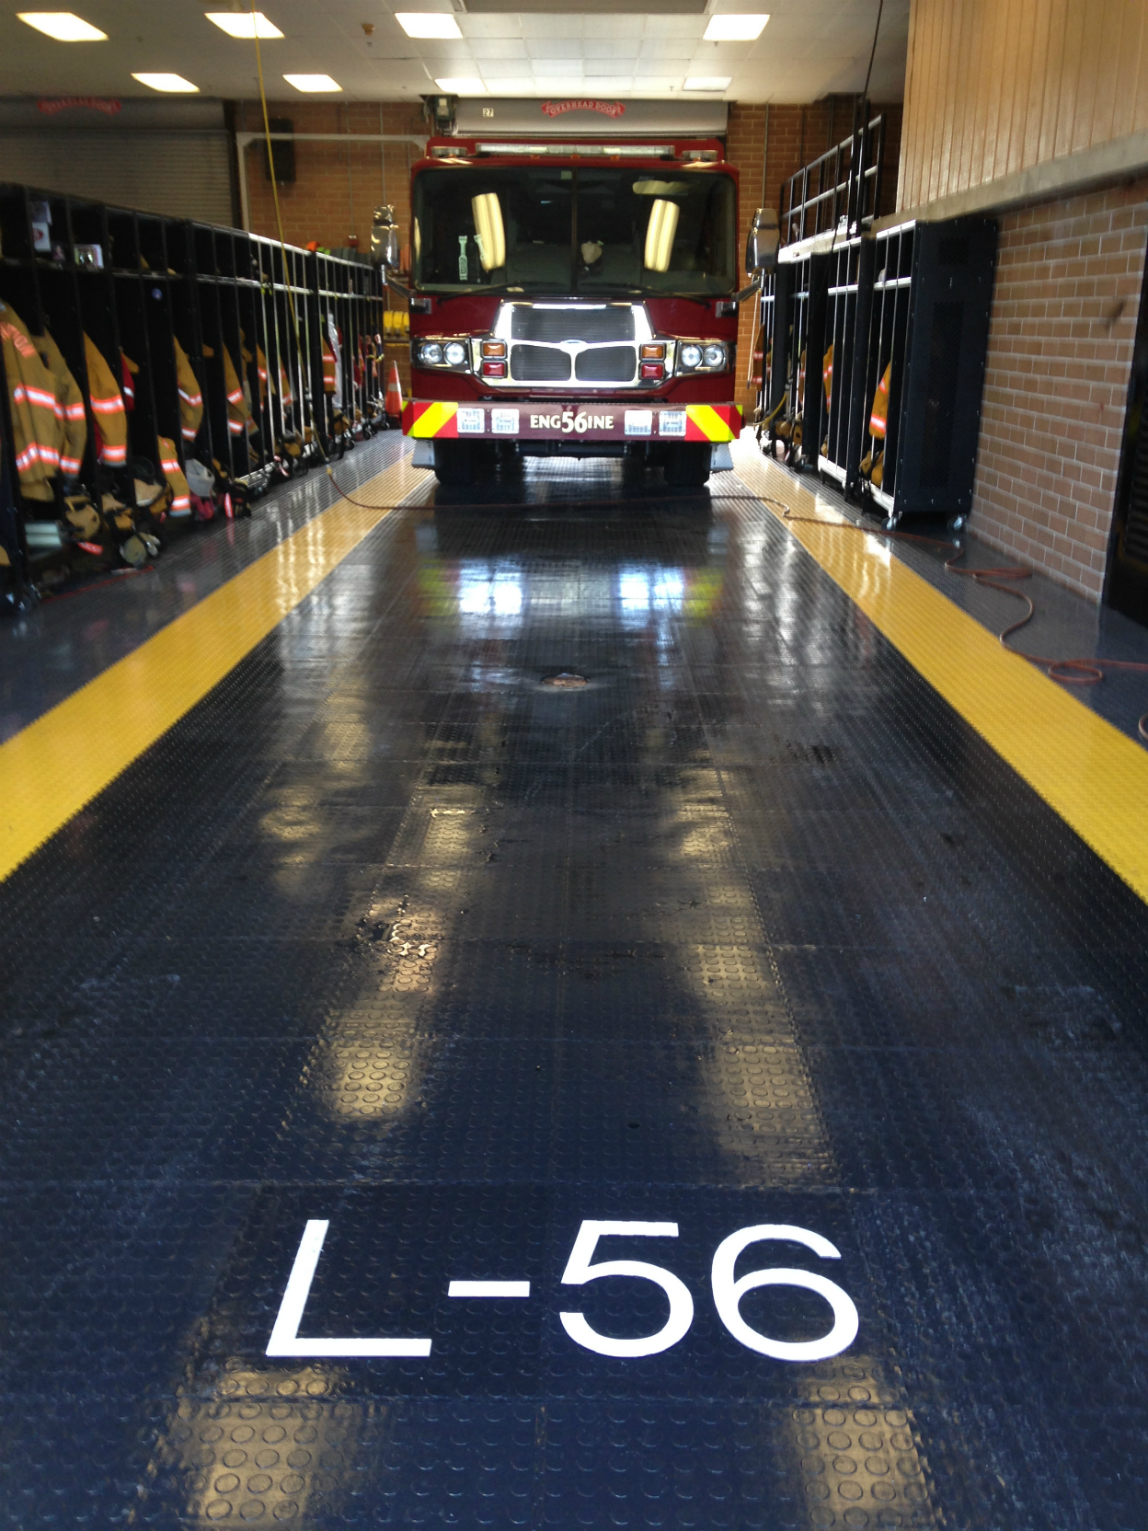 Garage floor tiles garage flooring armorgarage if youre looking for the best garage floor tiles armorgarage interlocking solid pvc tiles are it theyre guaranteed for life puncture proof dailygadgetfo Choice Image